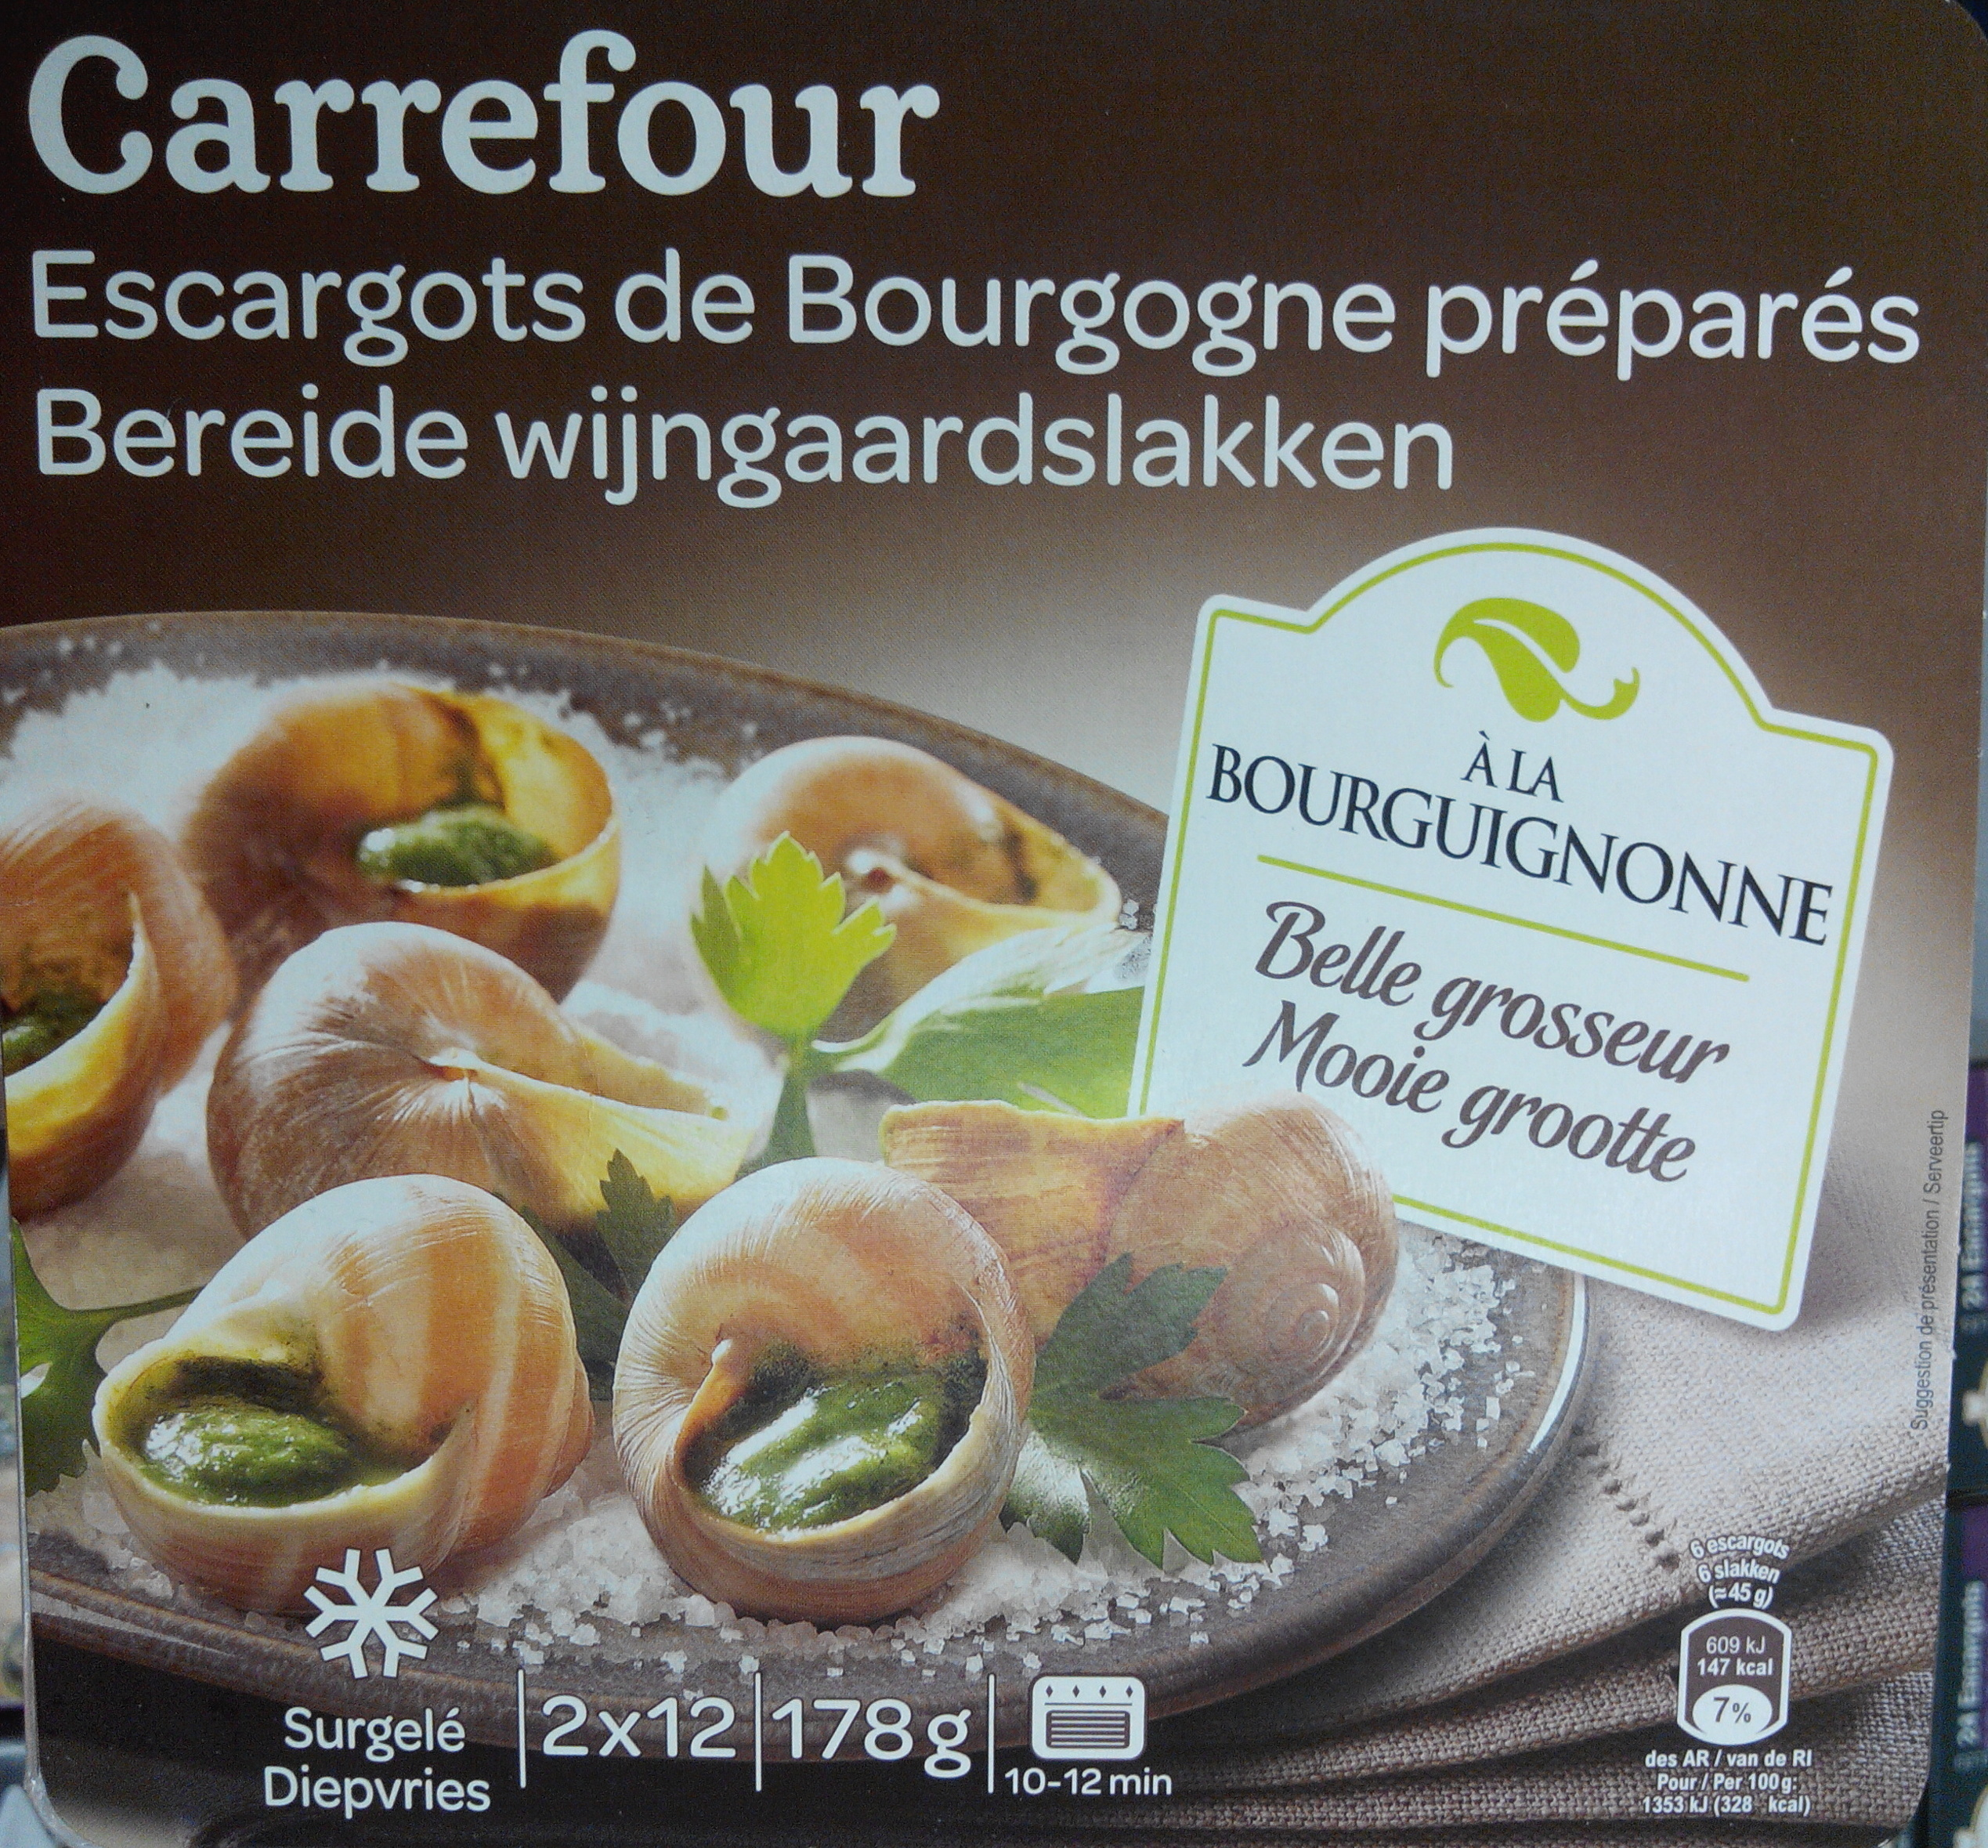 escargots de bourgogne pr par s carrefour 178 g. Black Bedroom Furniture Sets. Home Design Ideas